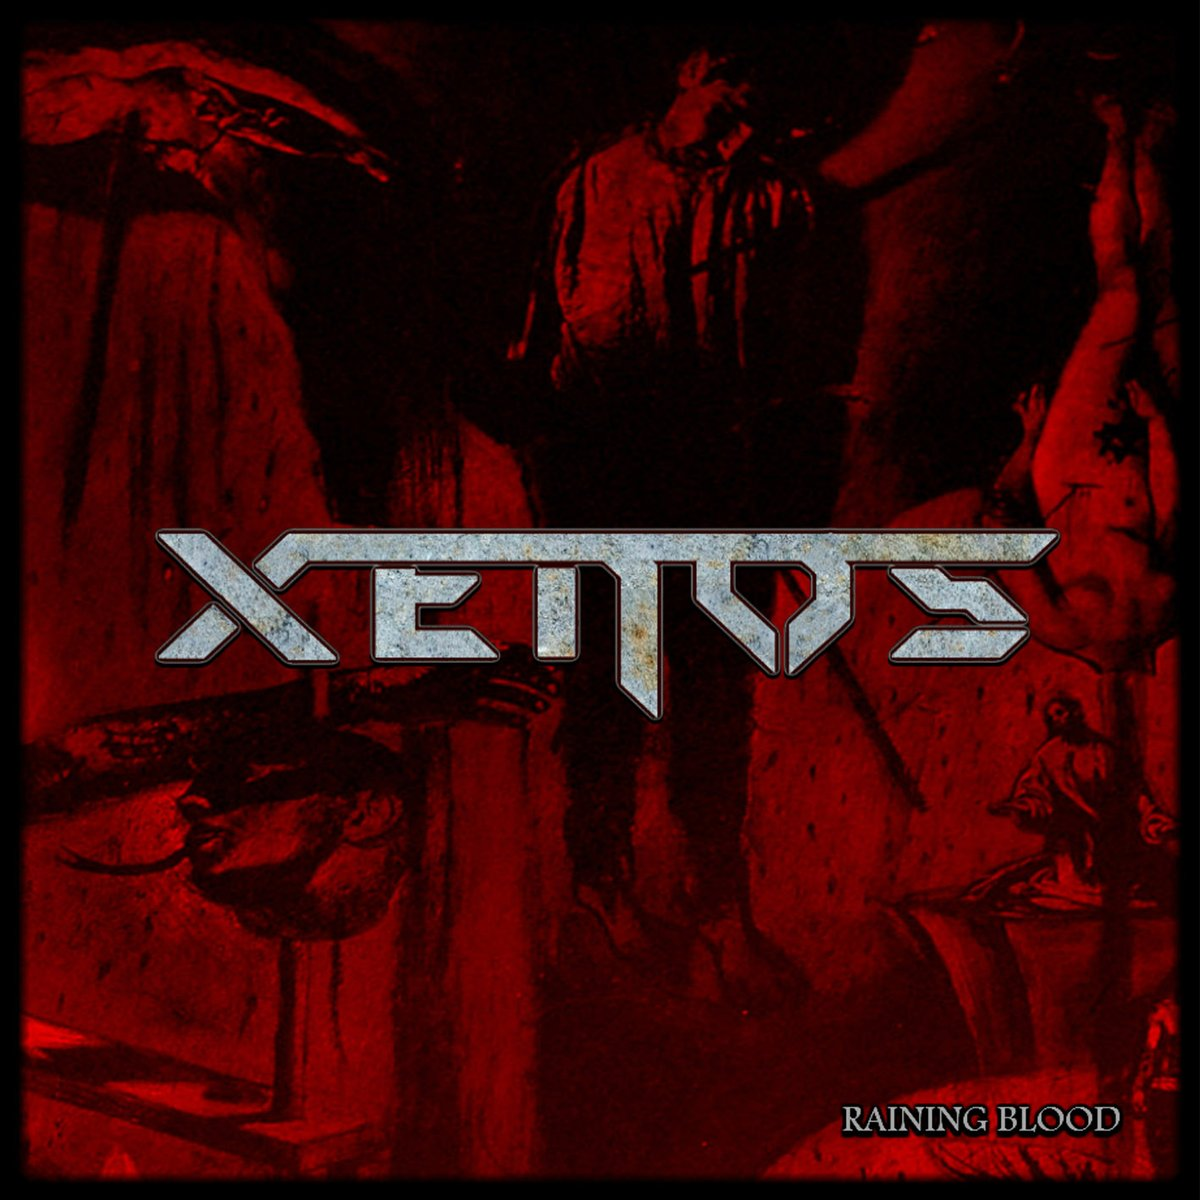 """- CLUB INFERNO news:  The Sicilian Thrash Metal masters XENOS will release on October 12th the cover of the classic """"Raining Blood"""" from SLAYER's masterpiece """"Reign in Blood"""". #xenos #thrashmetal #thrashmetalmusic #slayer #slayernation #rainingblood #cover https://t.co/pYgY4lxoMP"""